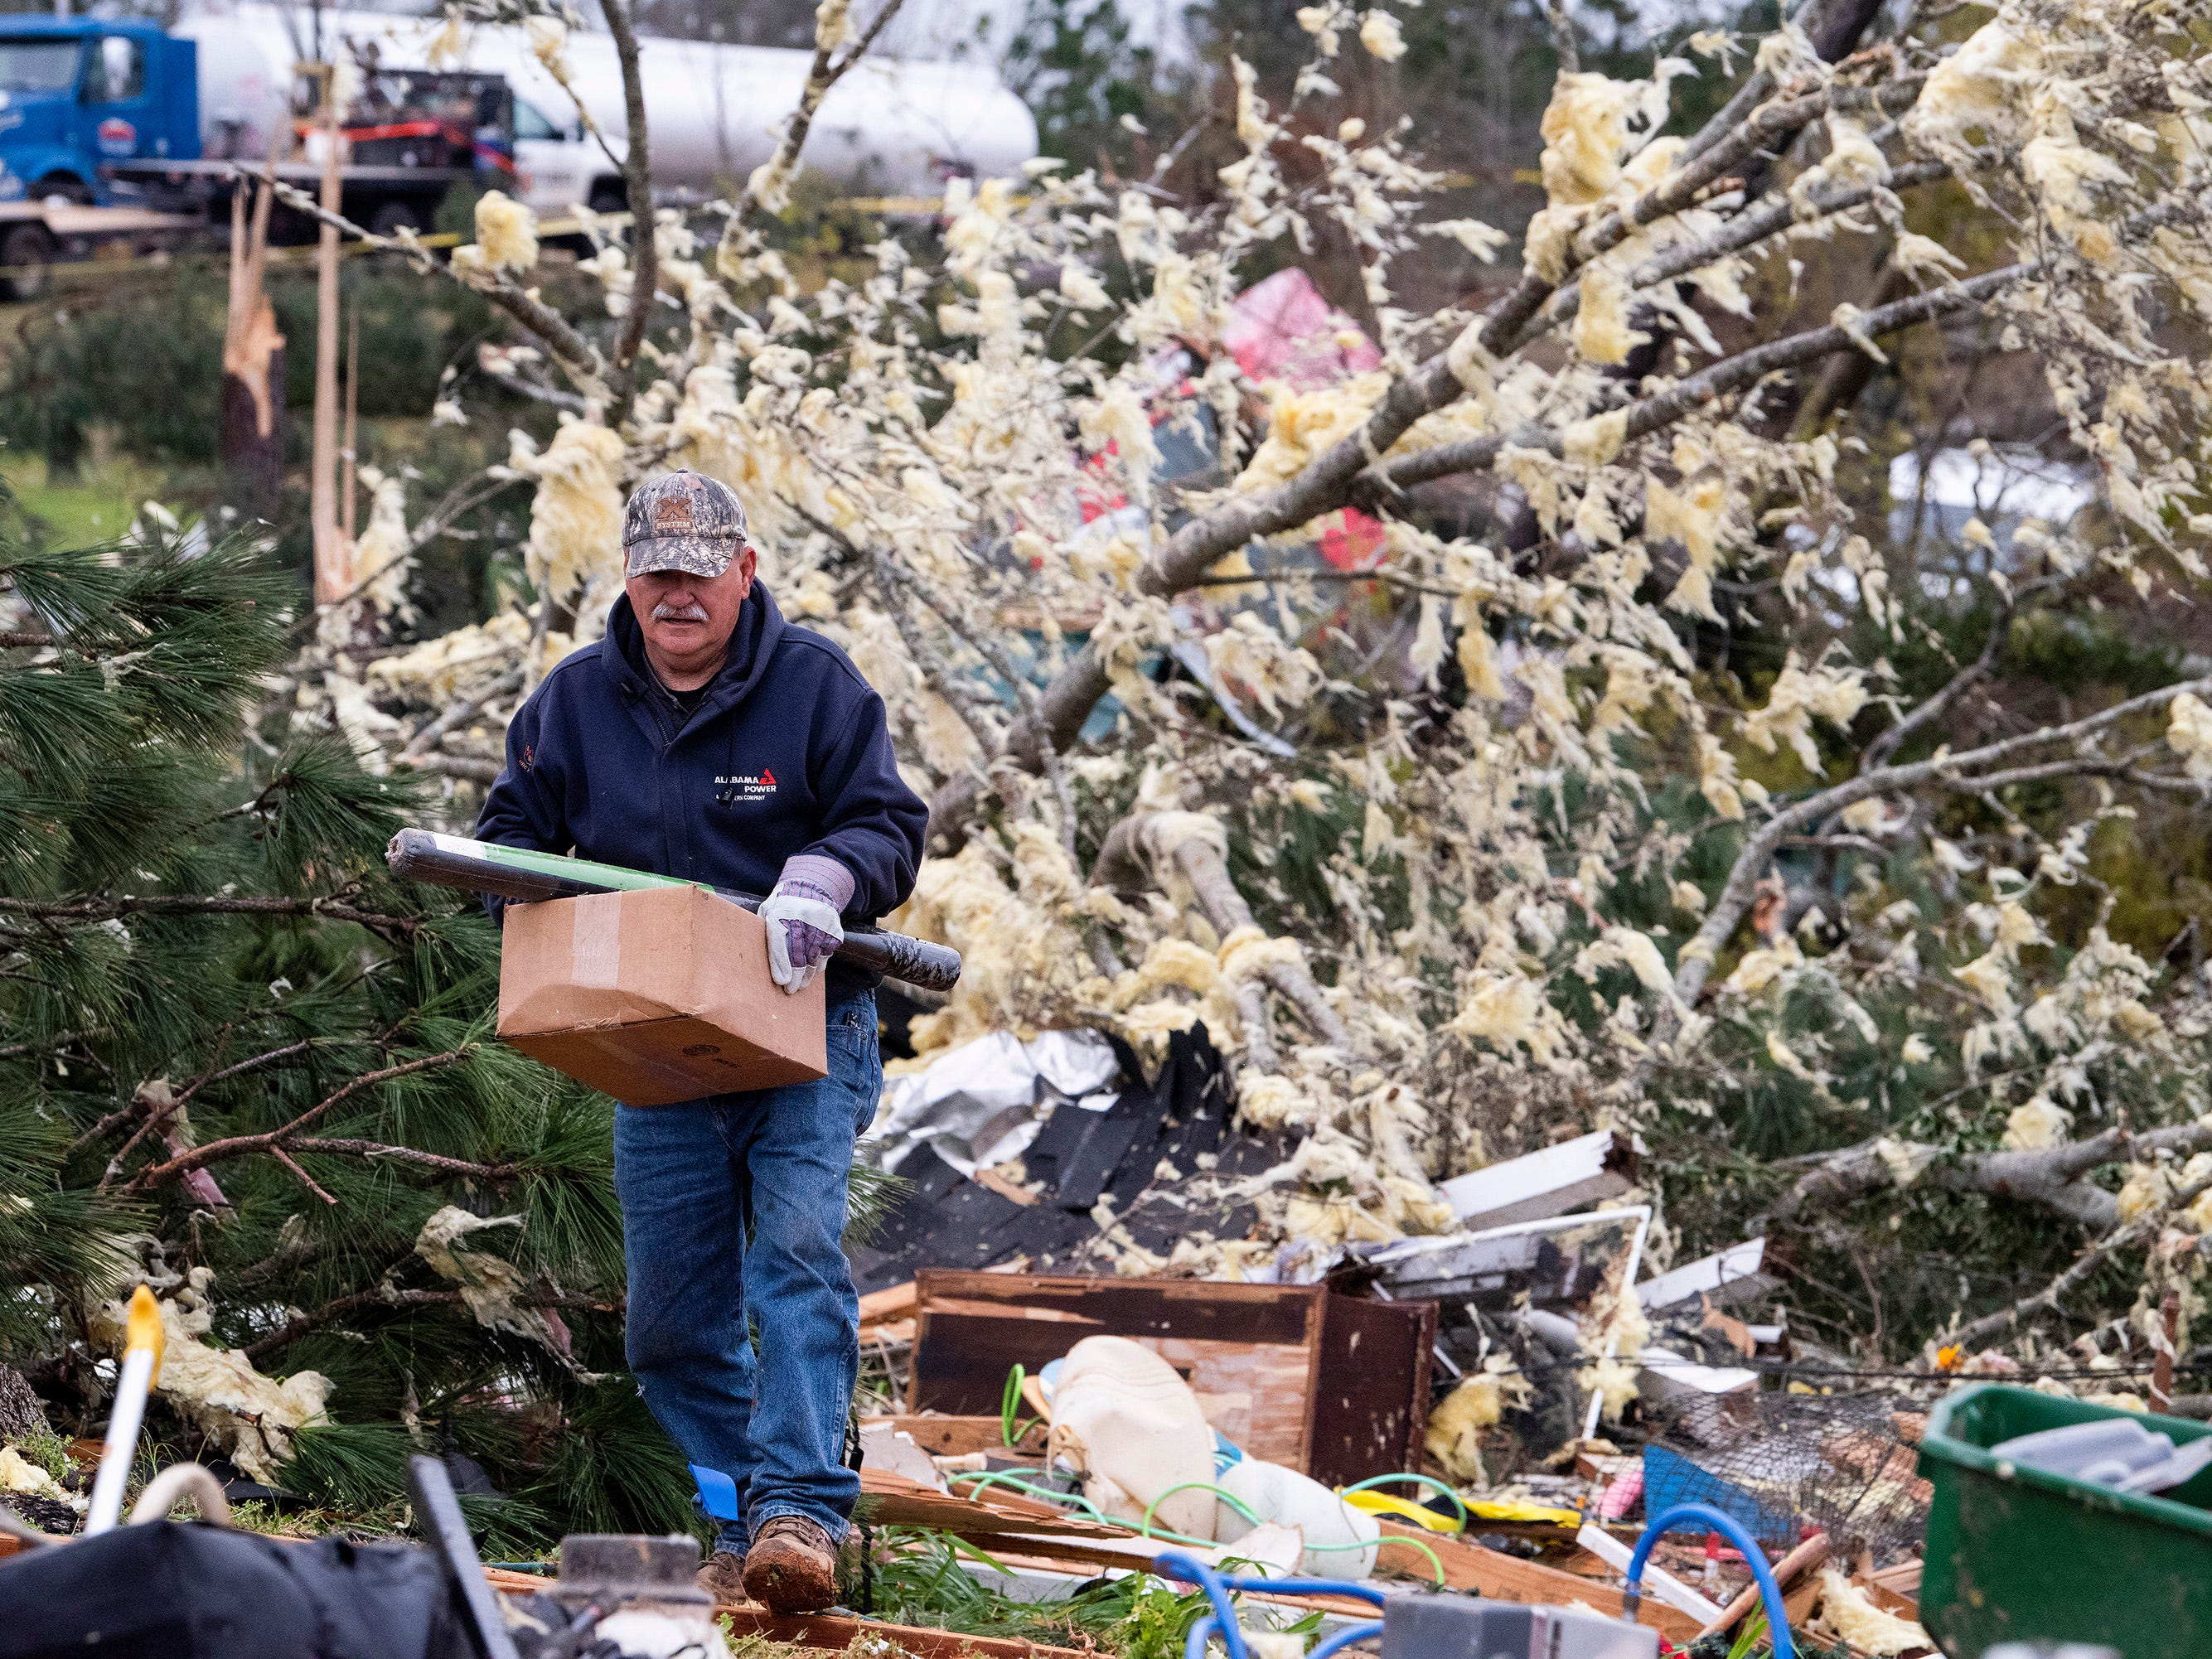 This is tornado damage near Beauregard, Ala., on March 4, 2019. A fatal  storm stuck on Sunday afternoon killing 23 people.